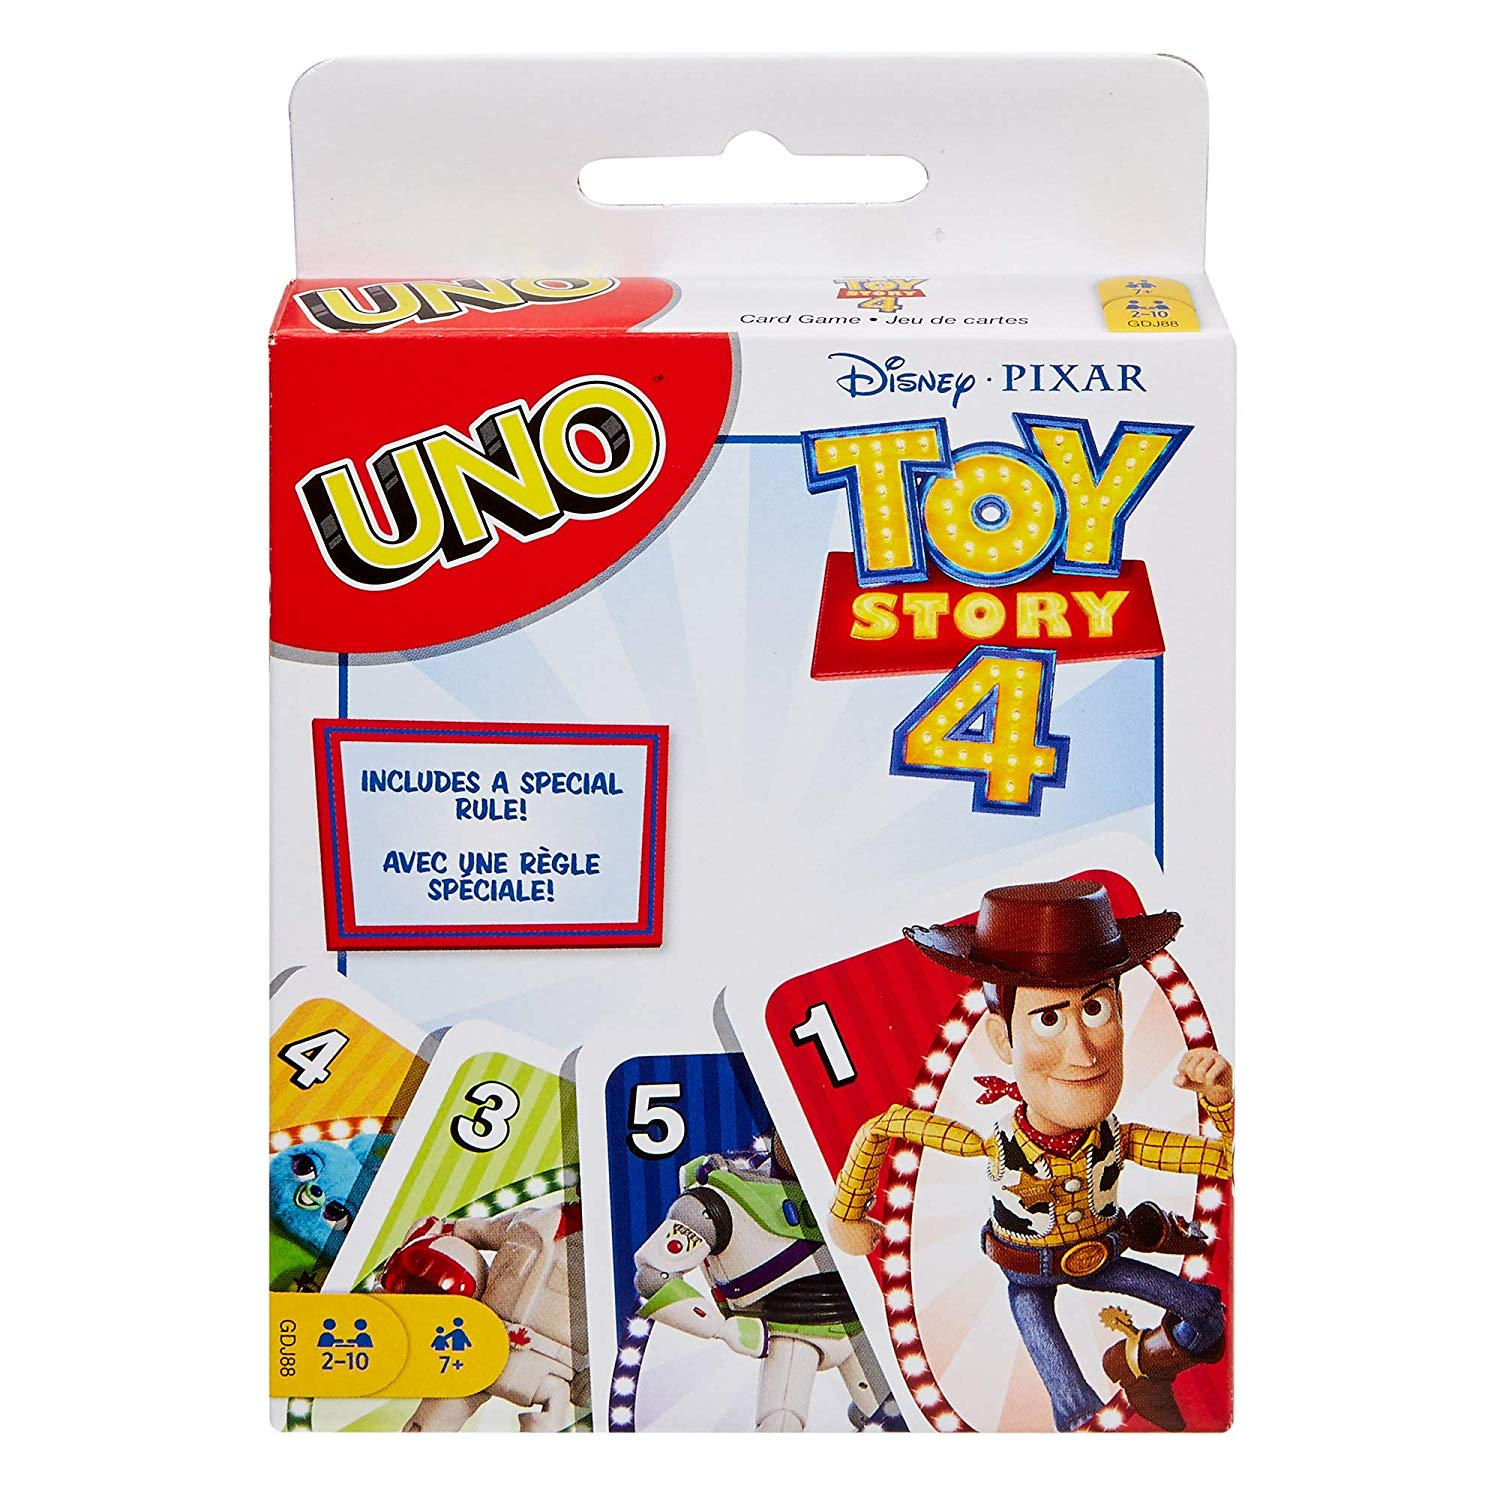 Toy Story 4 UNO card game $4 at Amazon, Walmart, Best Buy